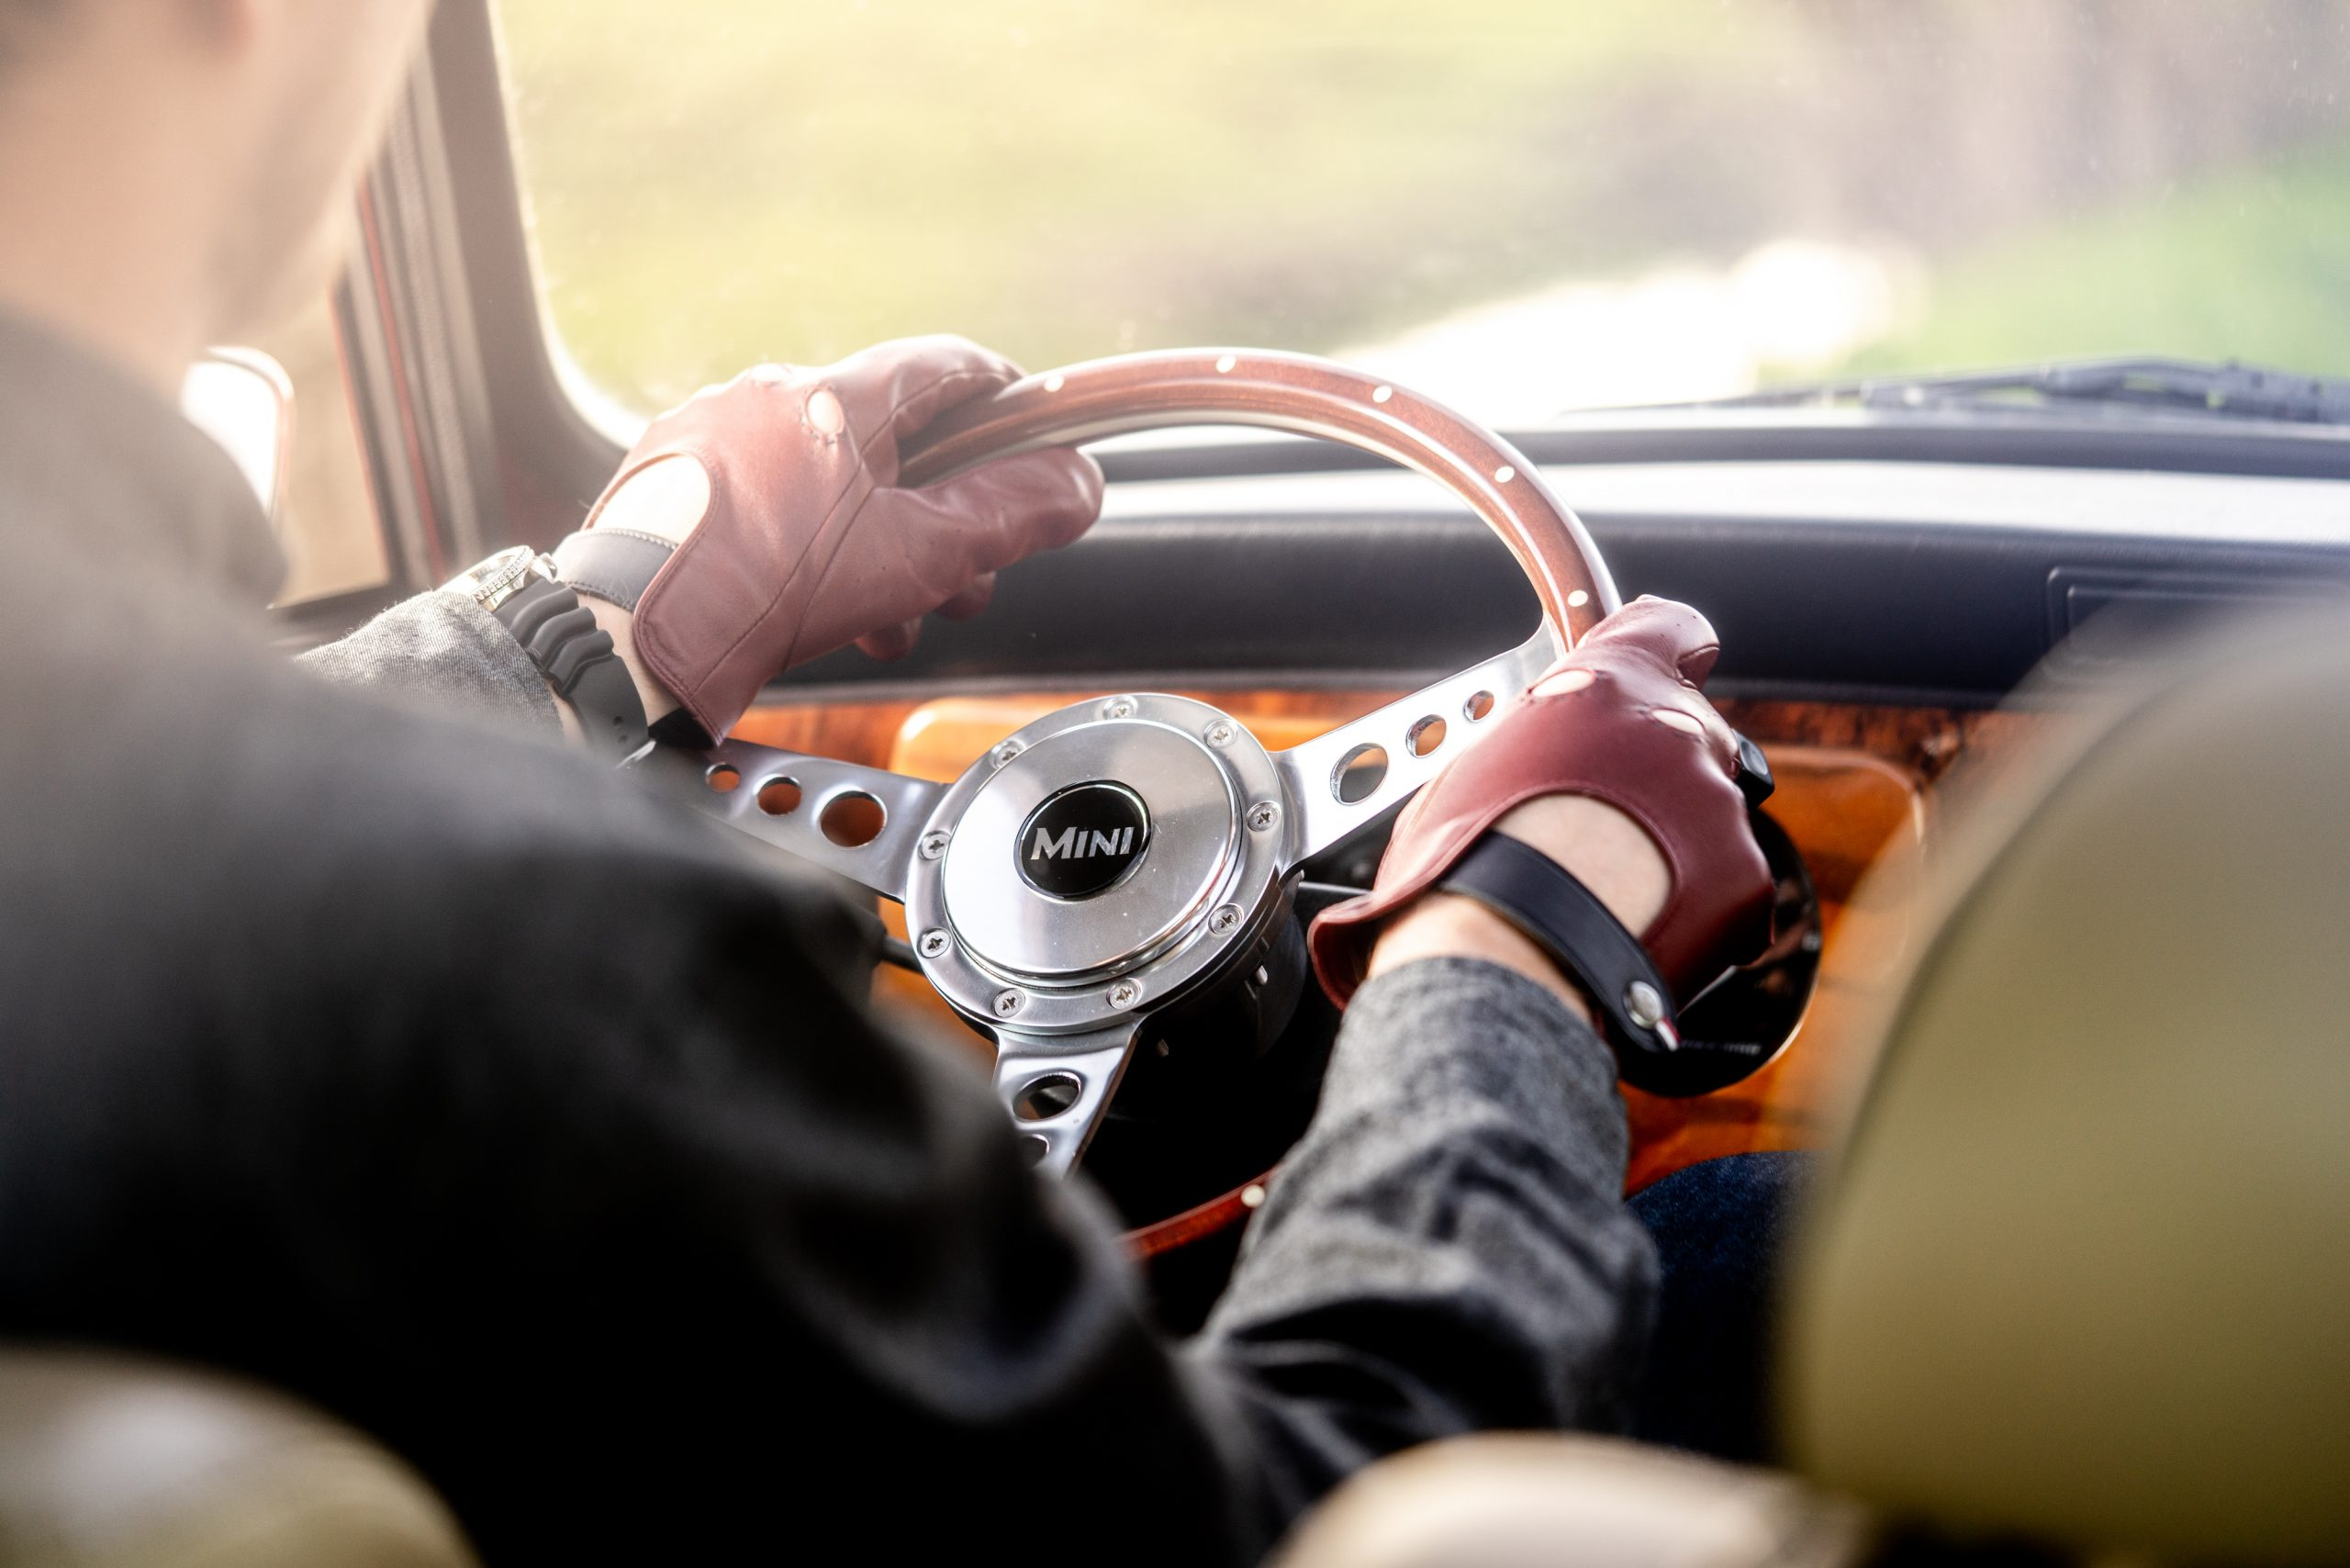 Roadr - Driving Gloves - Productfotografie - Done by Deon